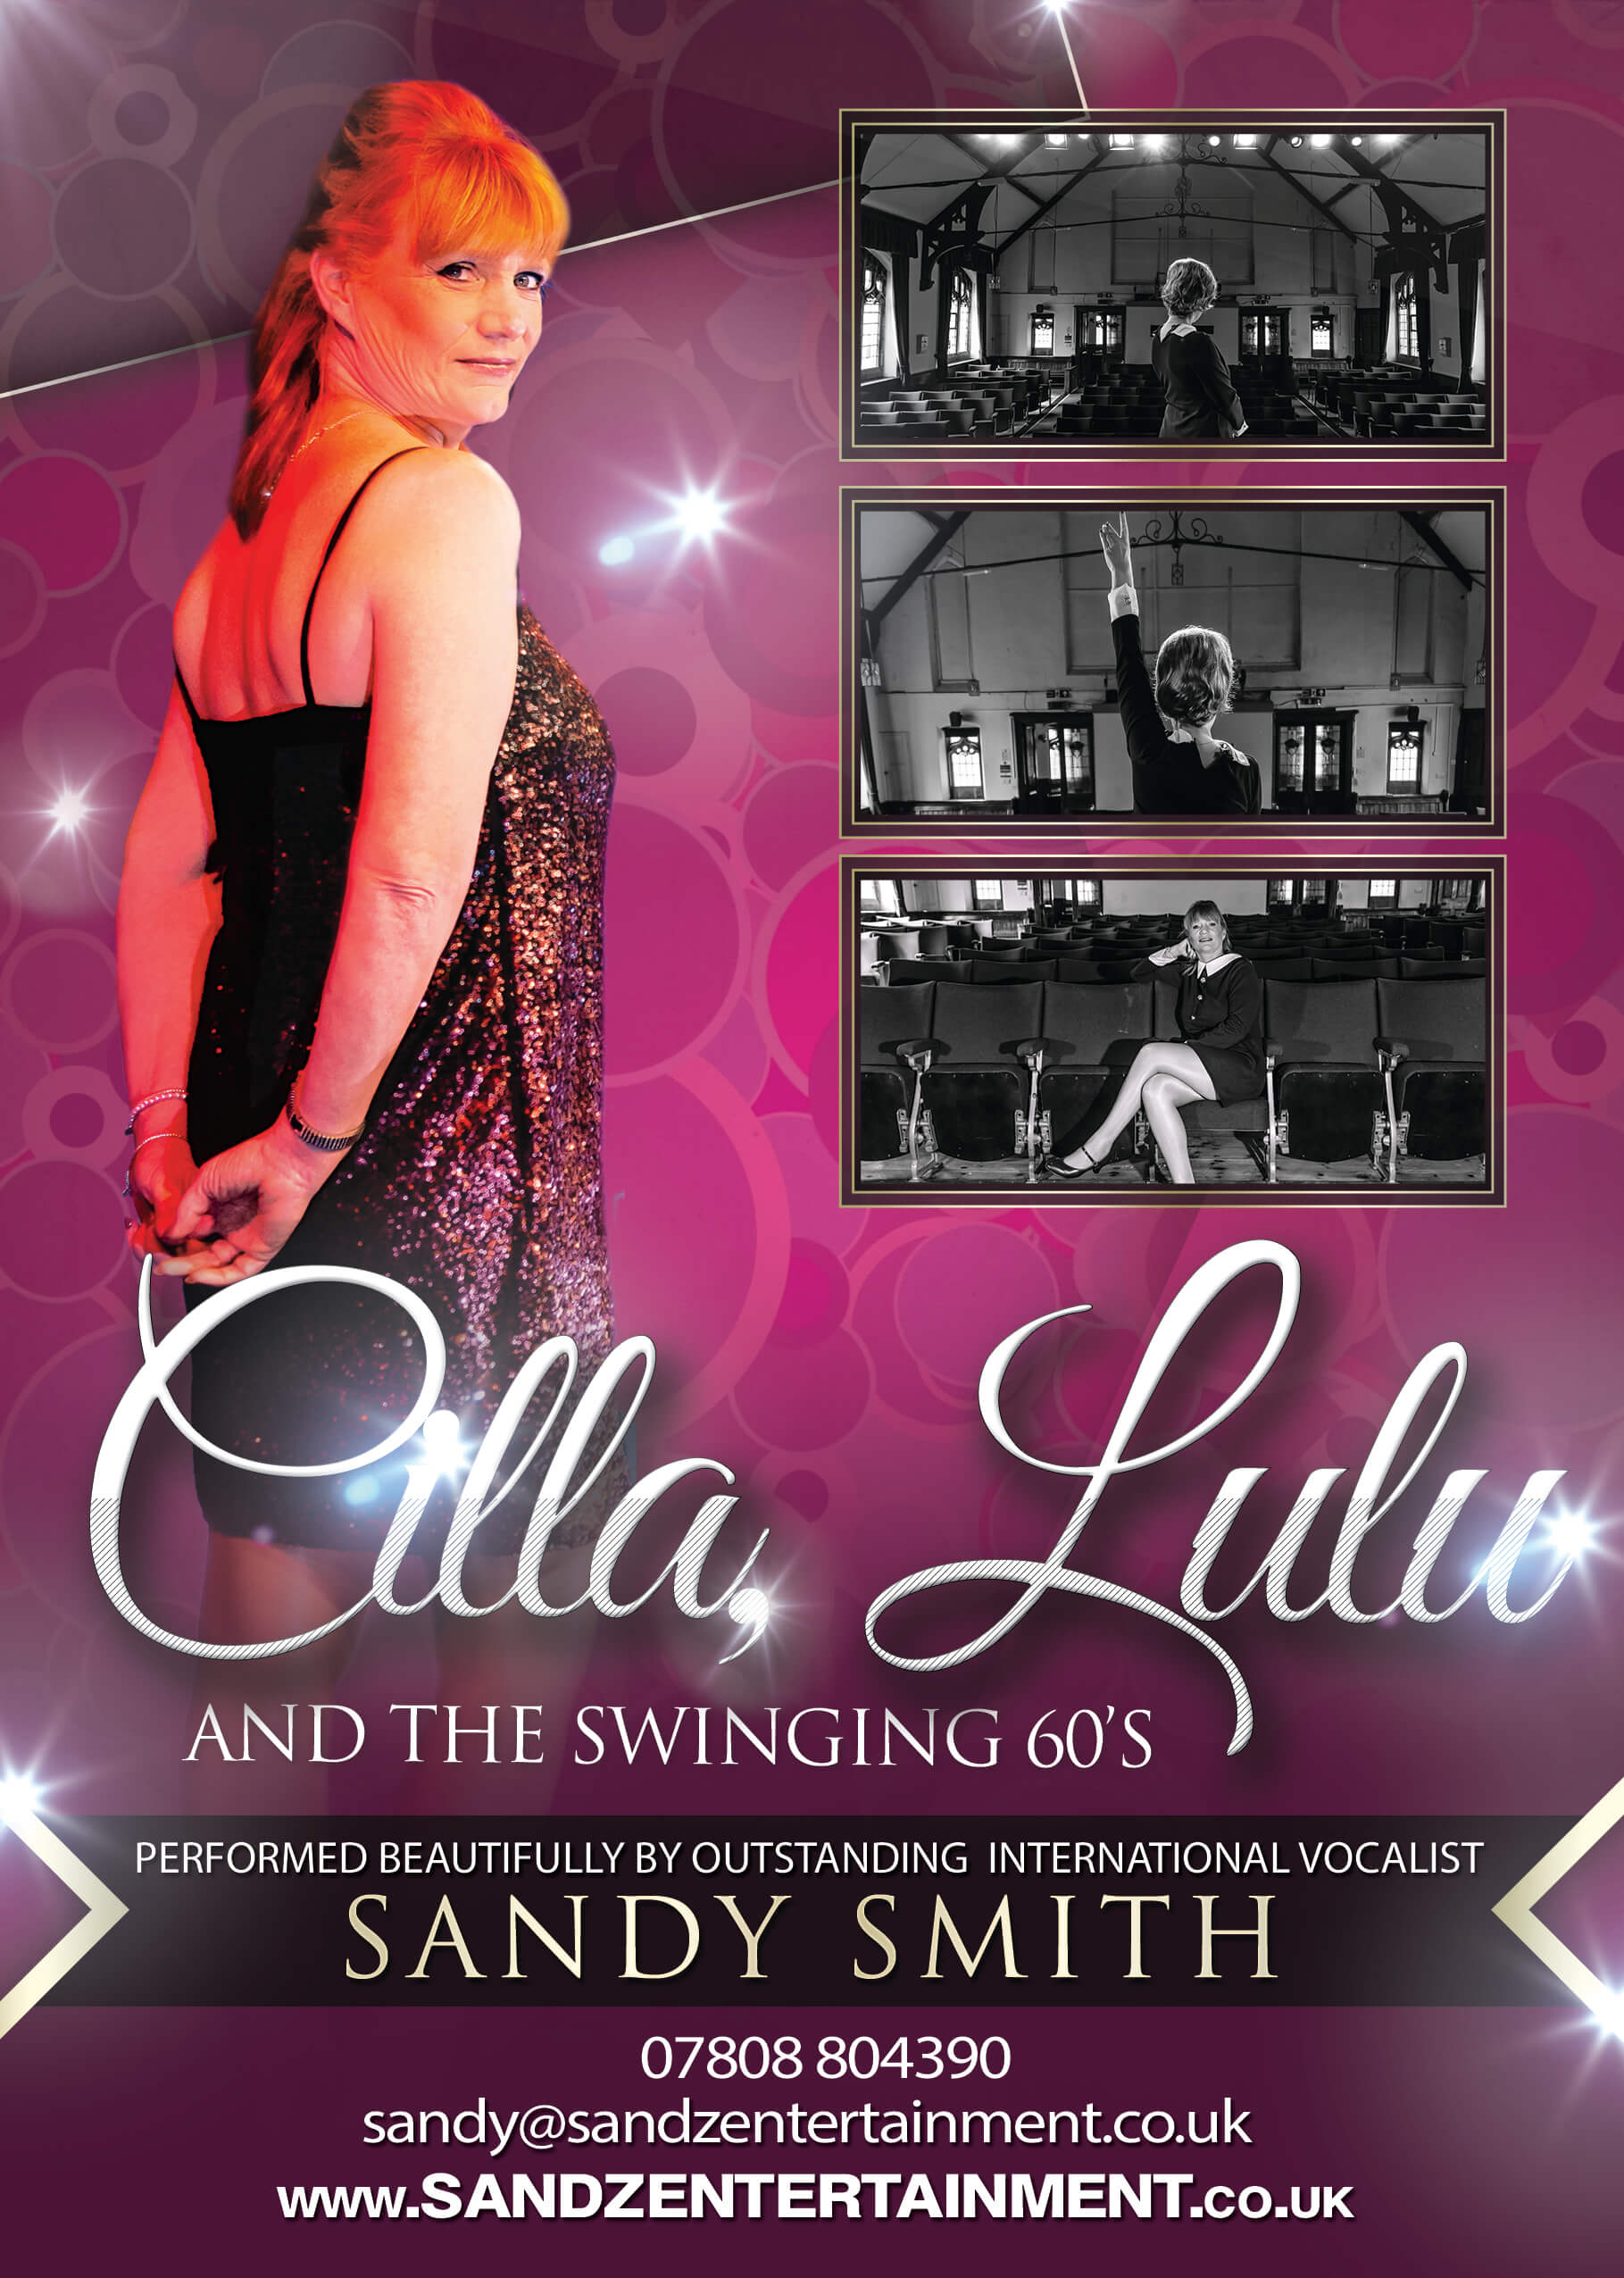 Cilla, Lulu & the Swinging 60's